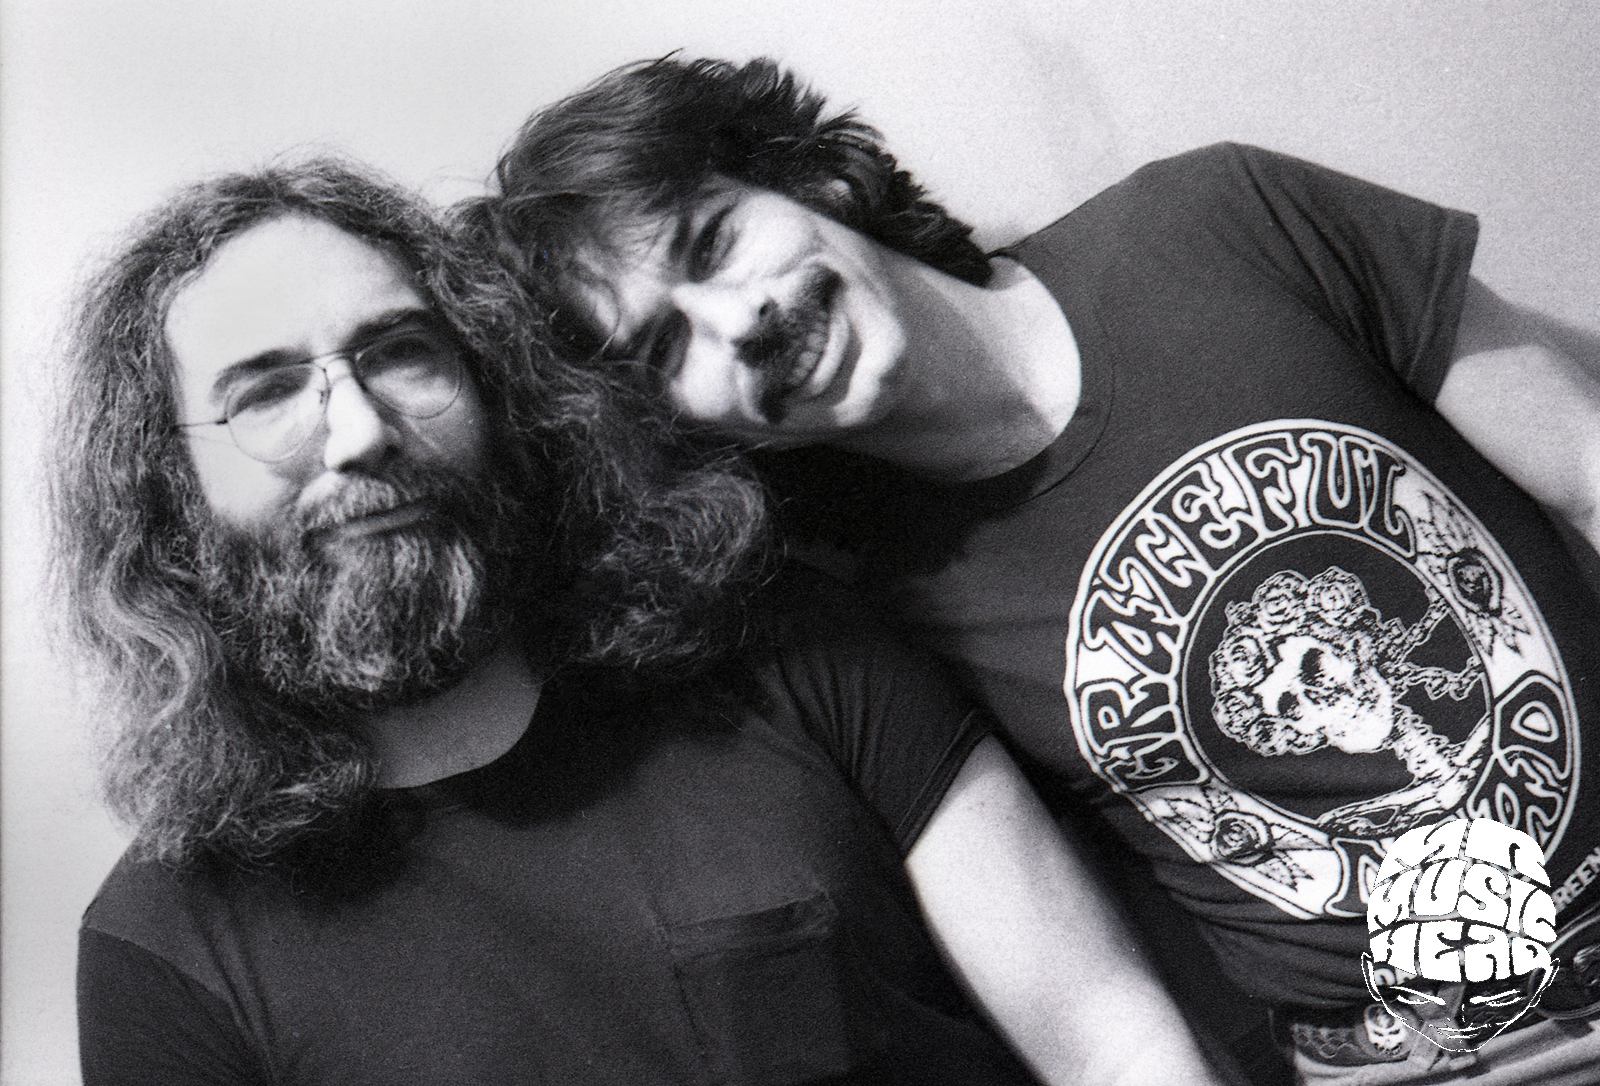 peter simon_jerry garcia_.jpg